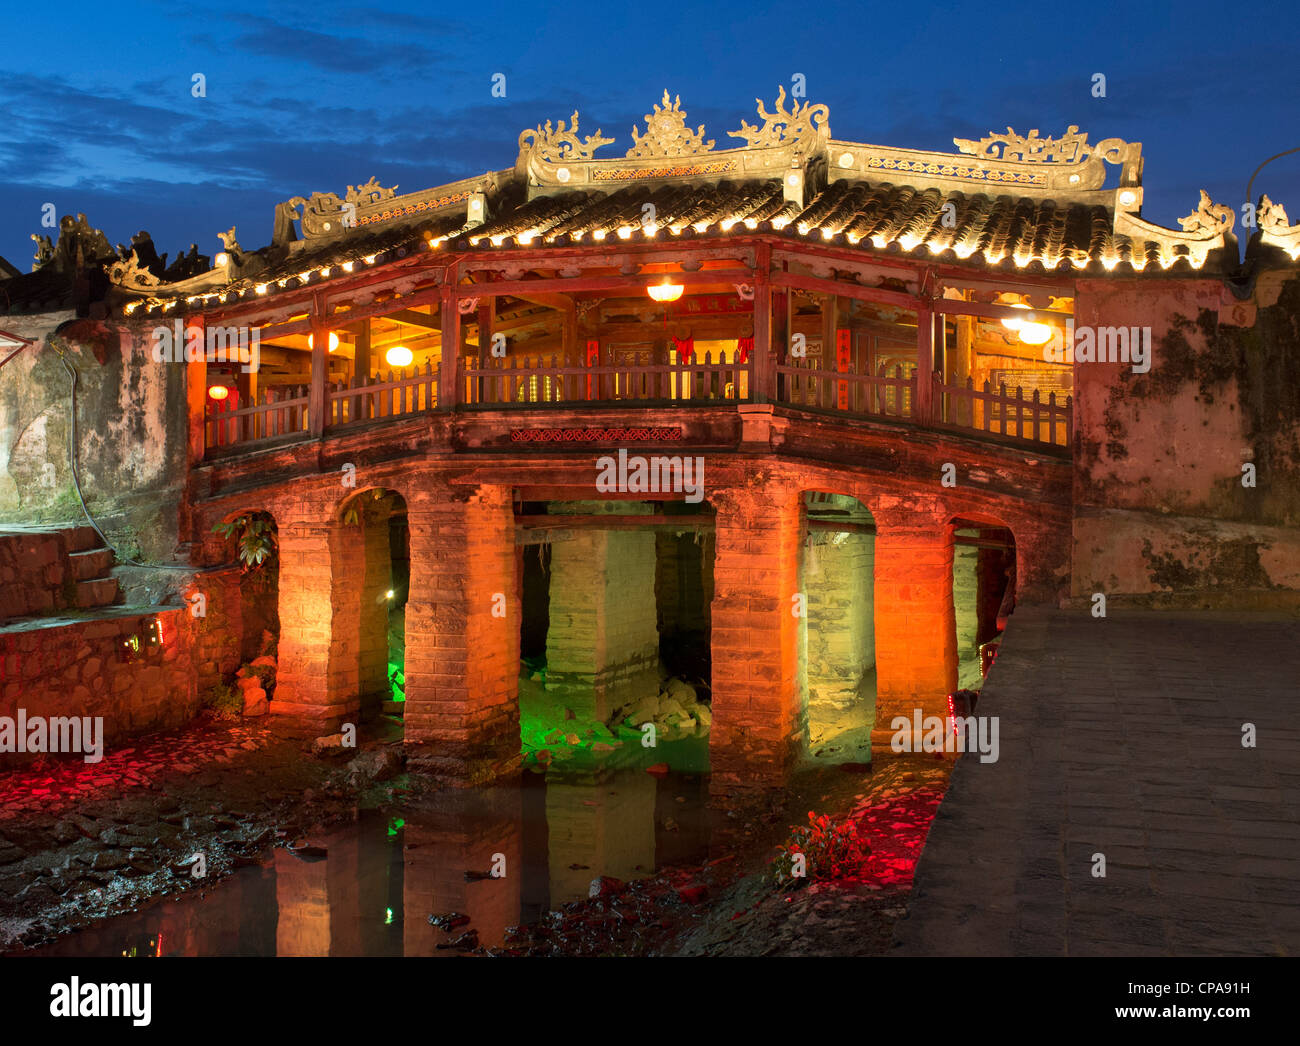 Illuminated night view of historic Japanese covered bridge in UNESCO heritage town of Hoian in Vietnam - Stock Image